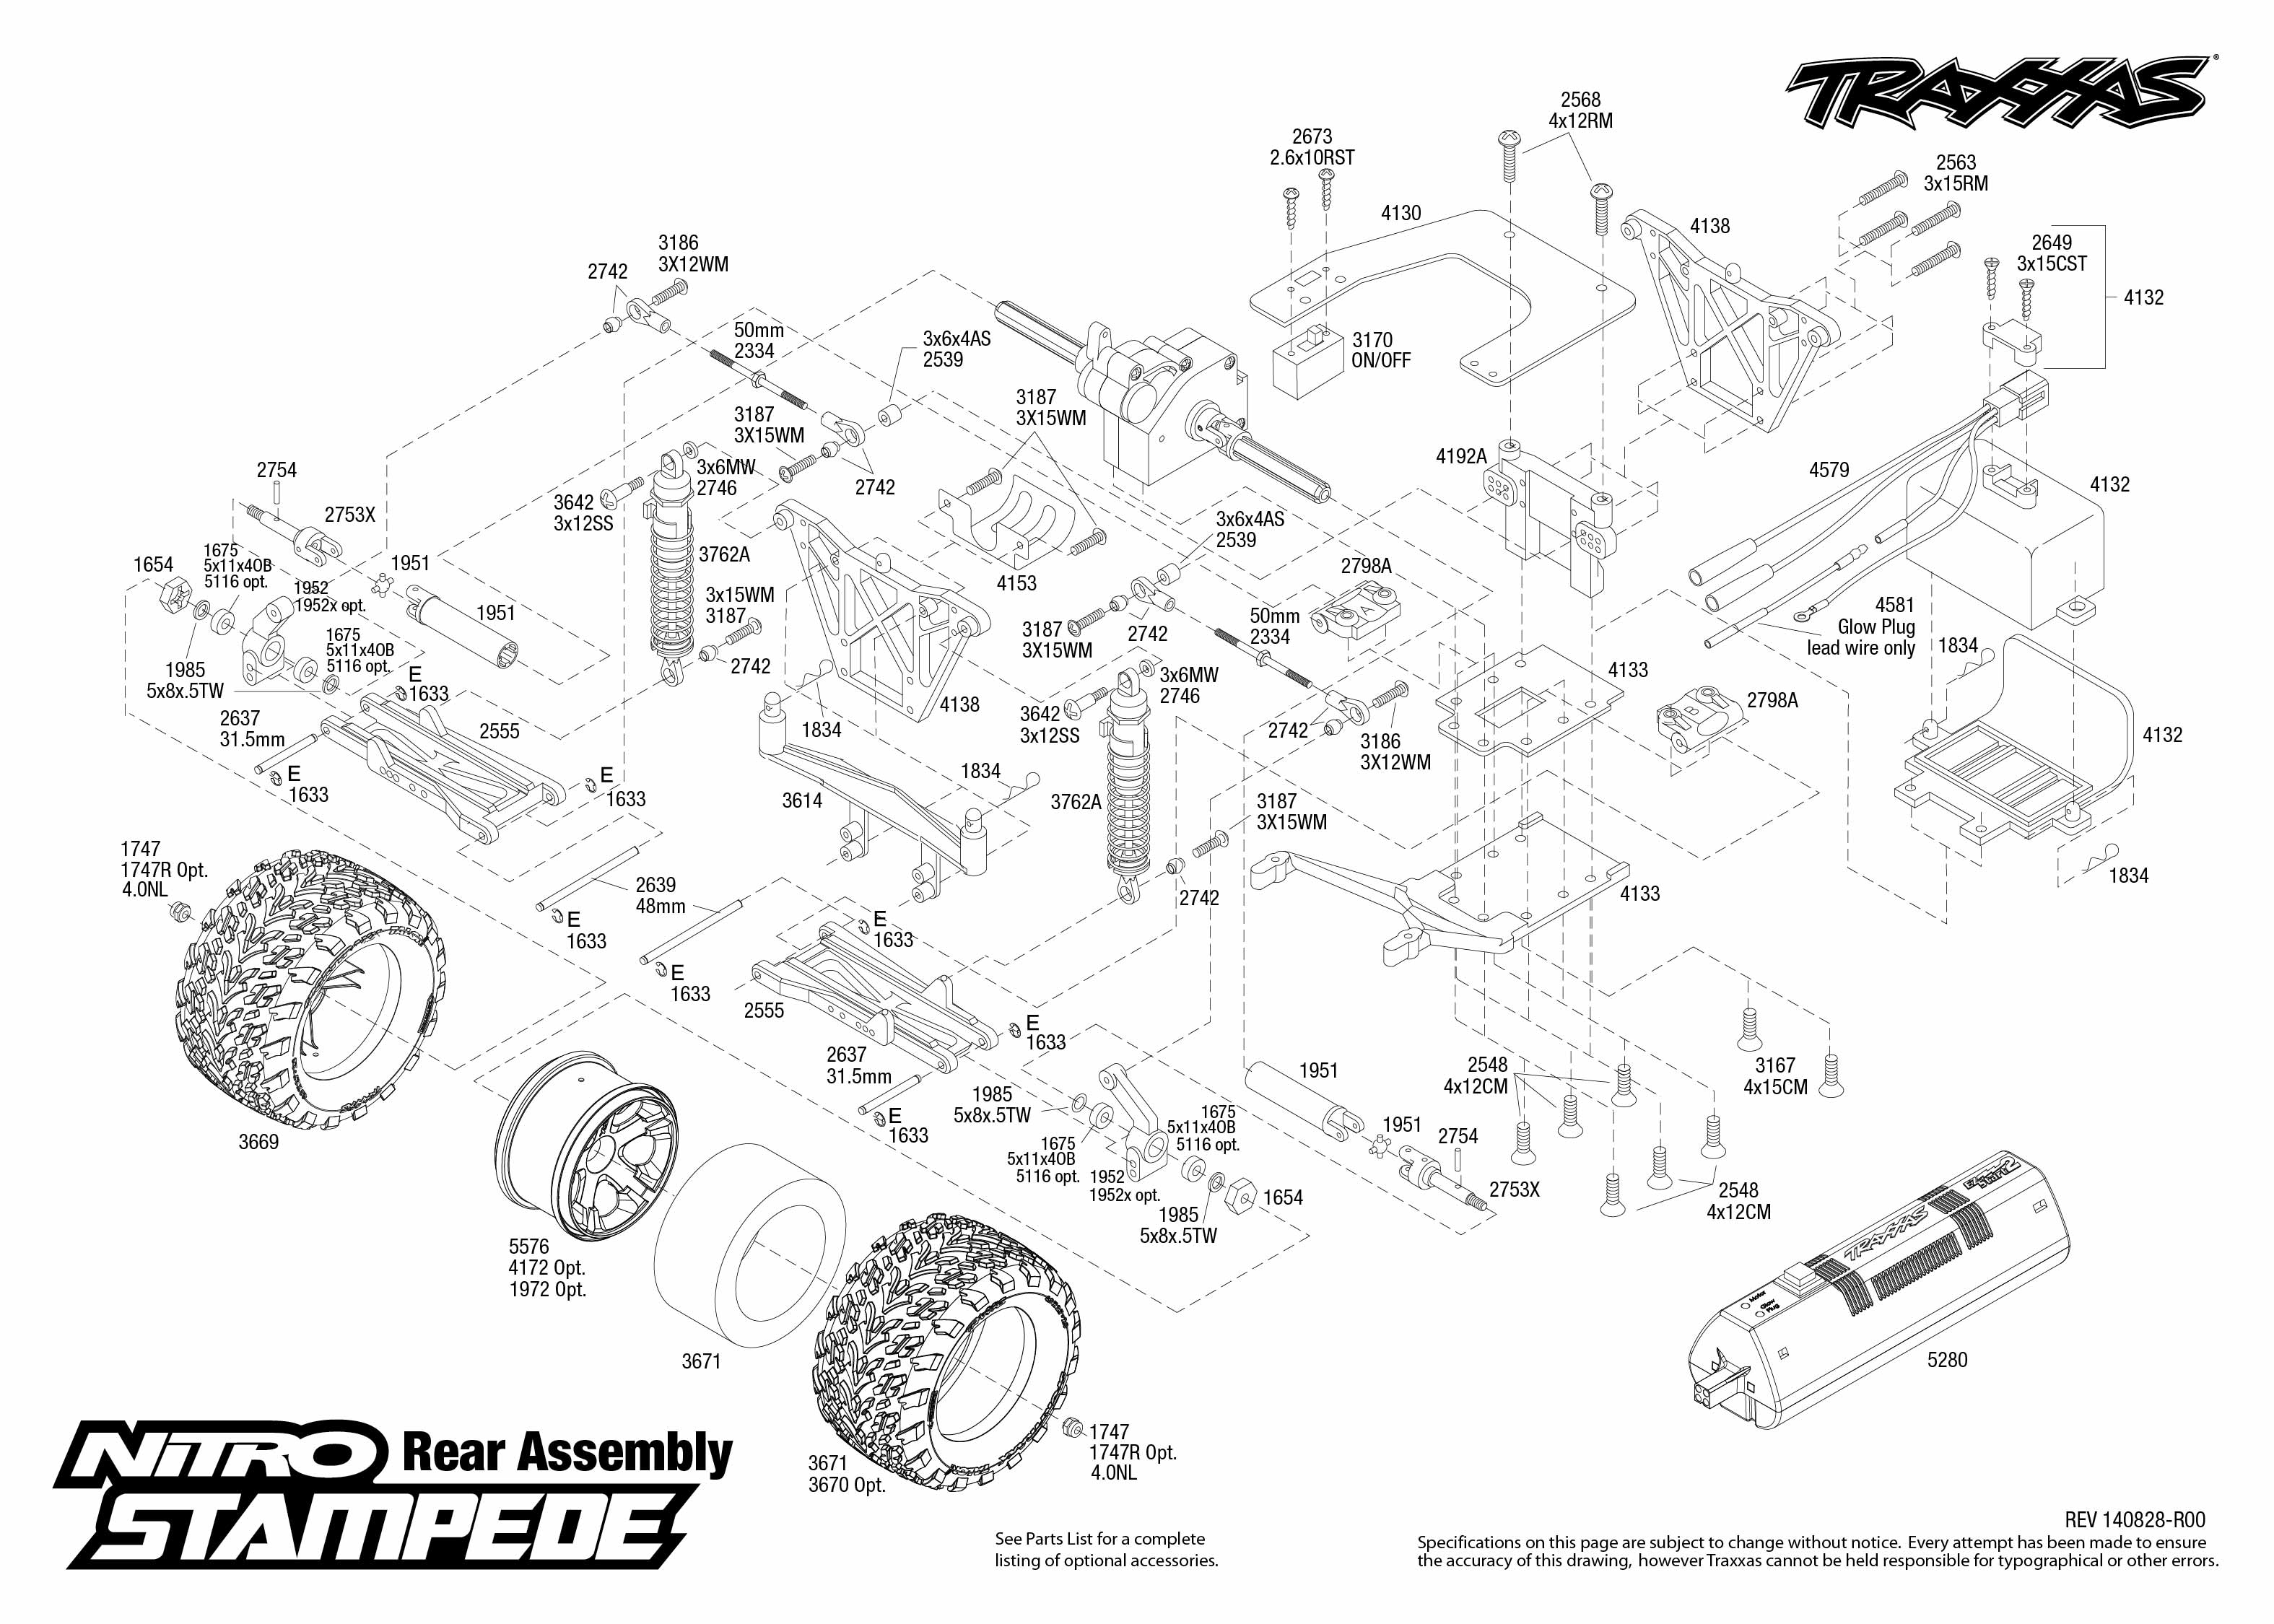 Nitro Stampede 1 Rear Assembly Exploded View